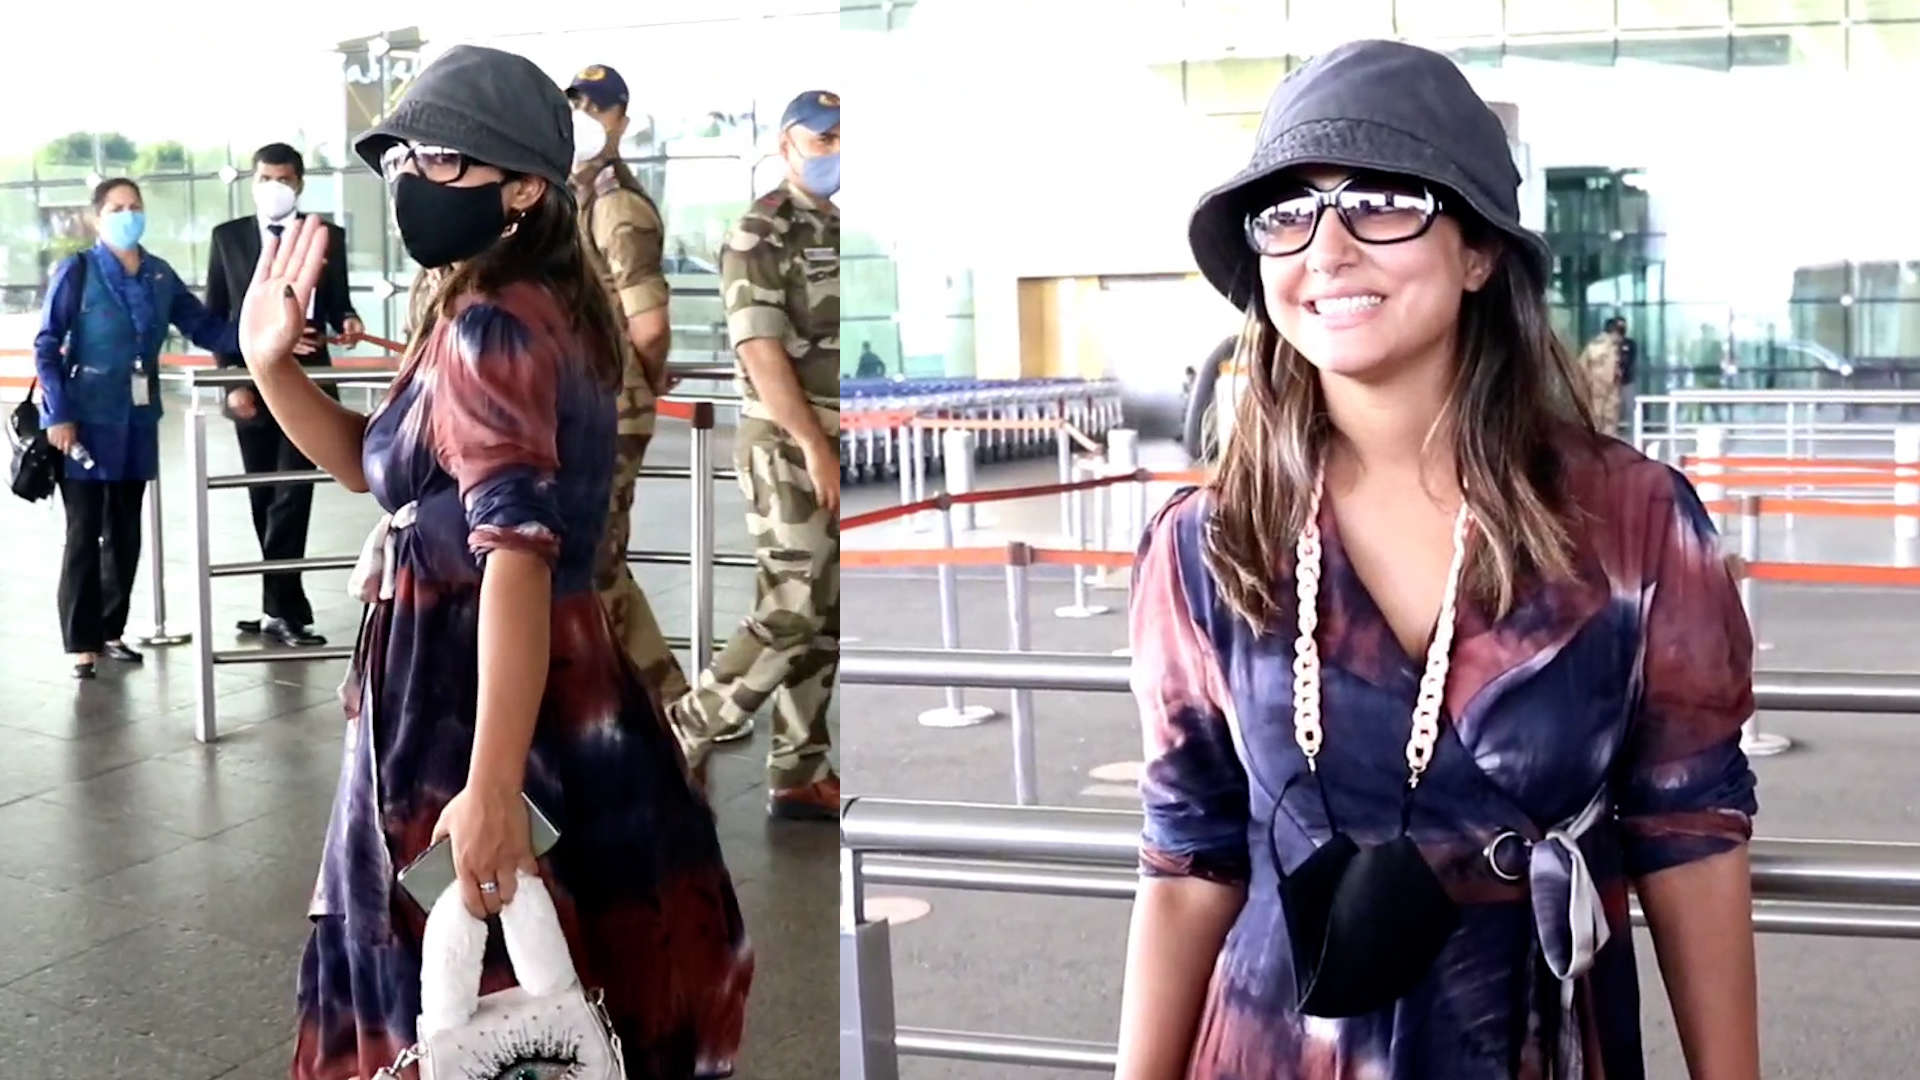 Airport spotting: Hina Khan sports a chic look | TV - Times of India Videos